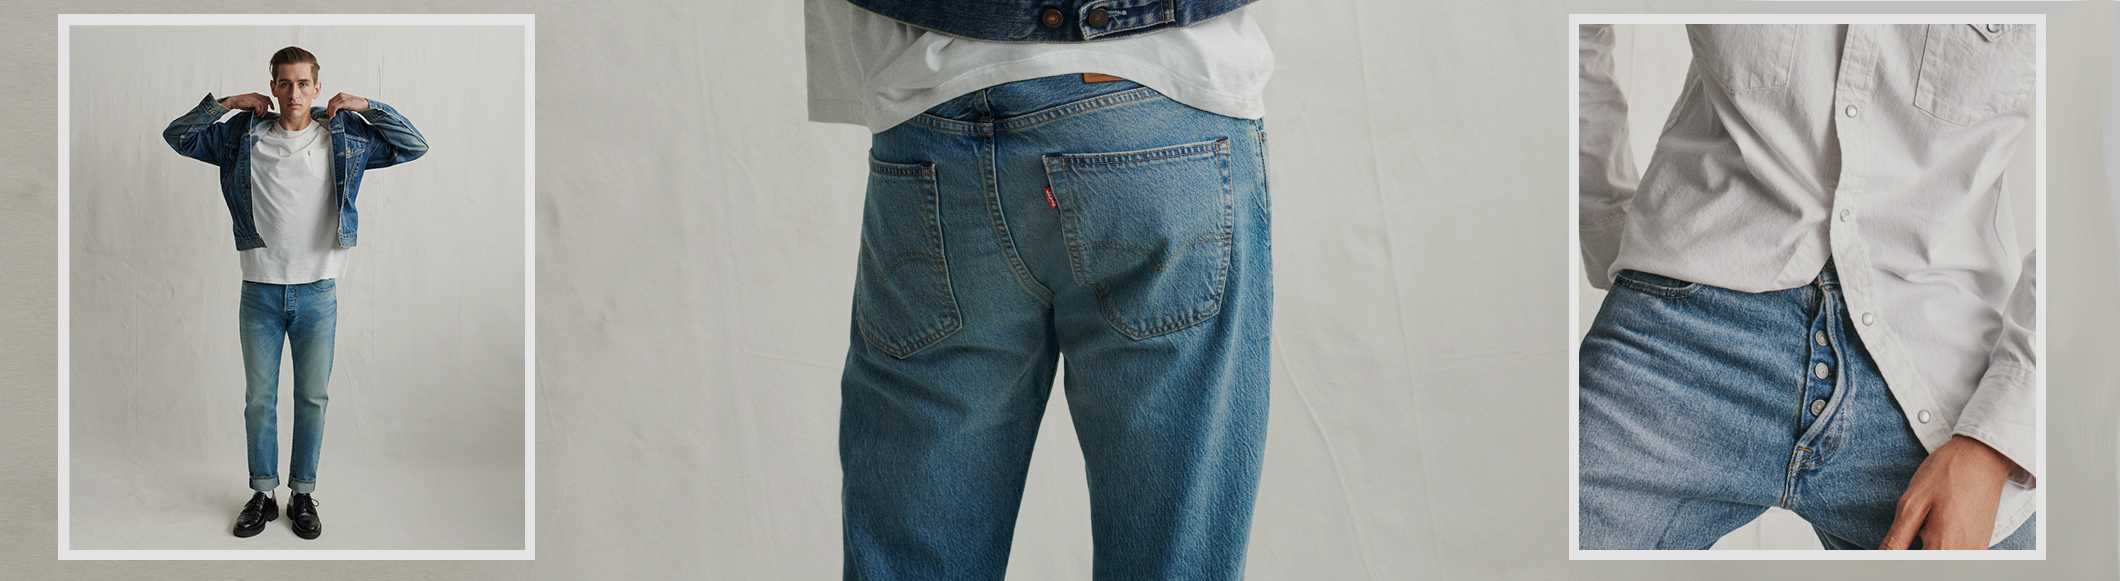 5a0e0c2c46f Men s 501® Jeans - Shop 501® Original Fit Jeans